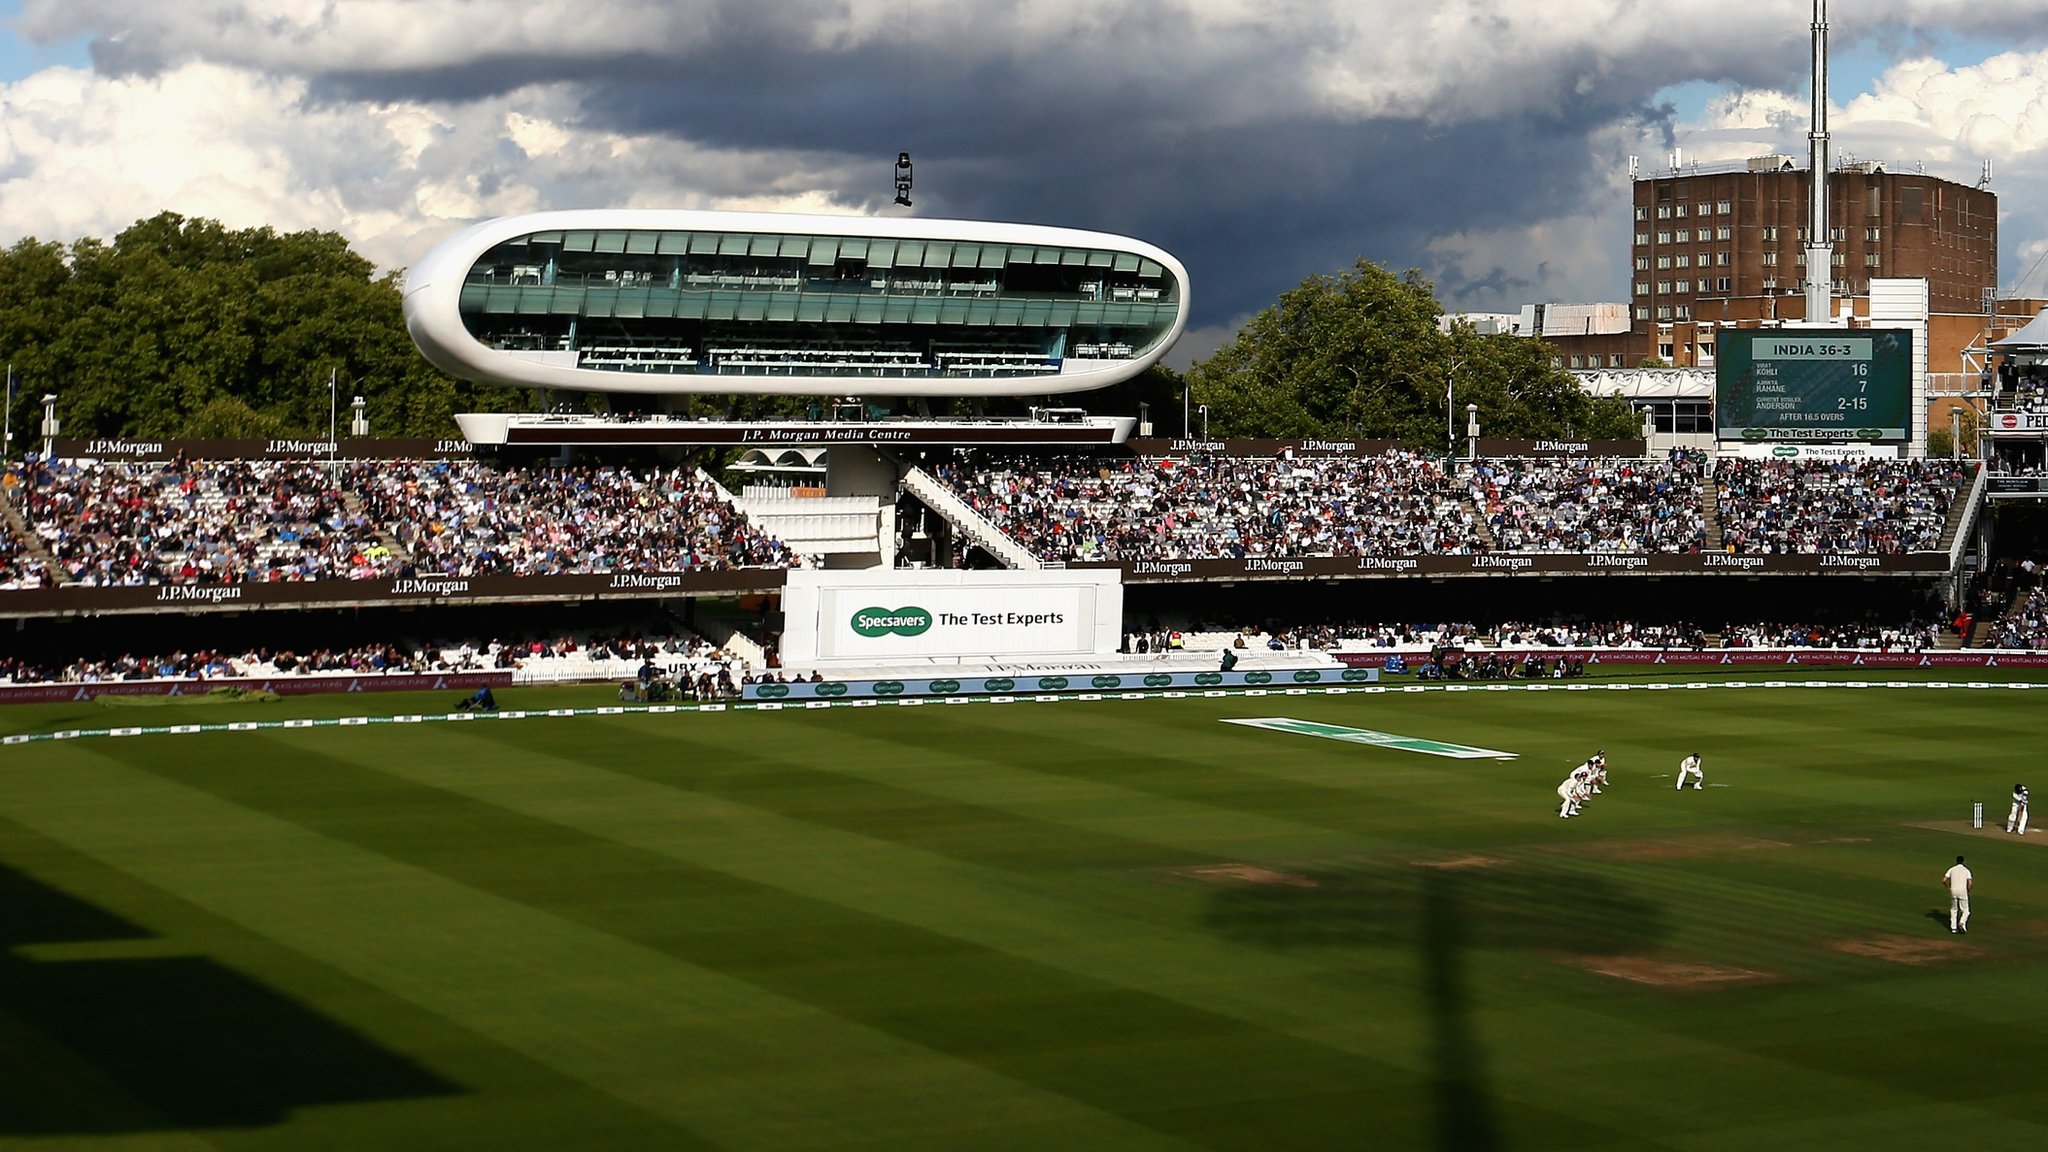 Lord's redevelopment: MCC gets planning permission for £50m Compton & Edrich Stands